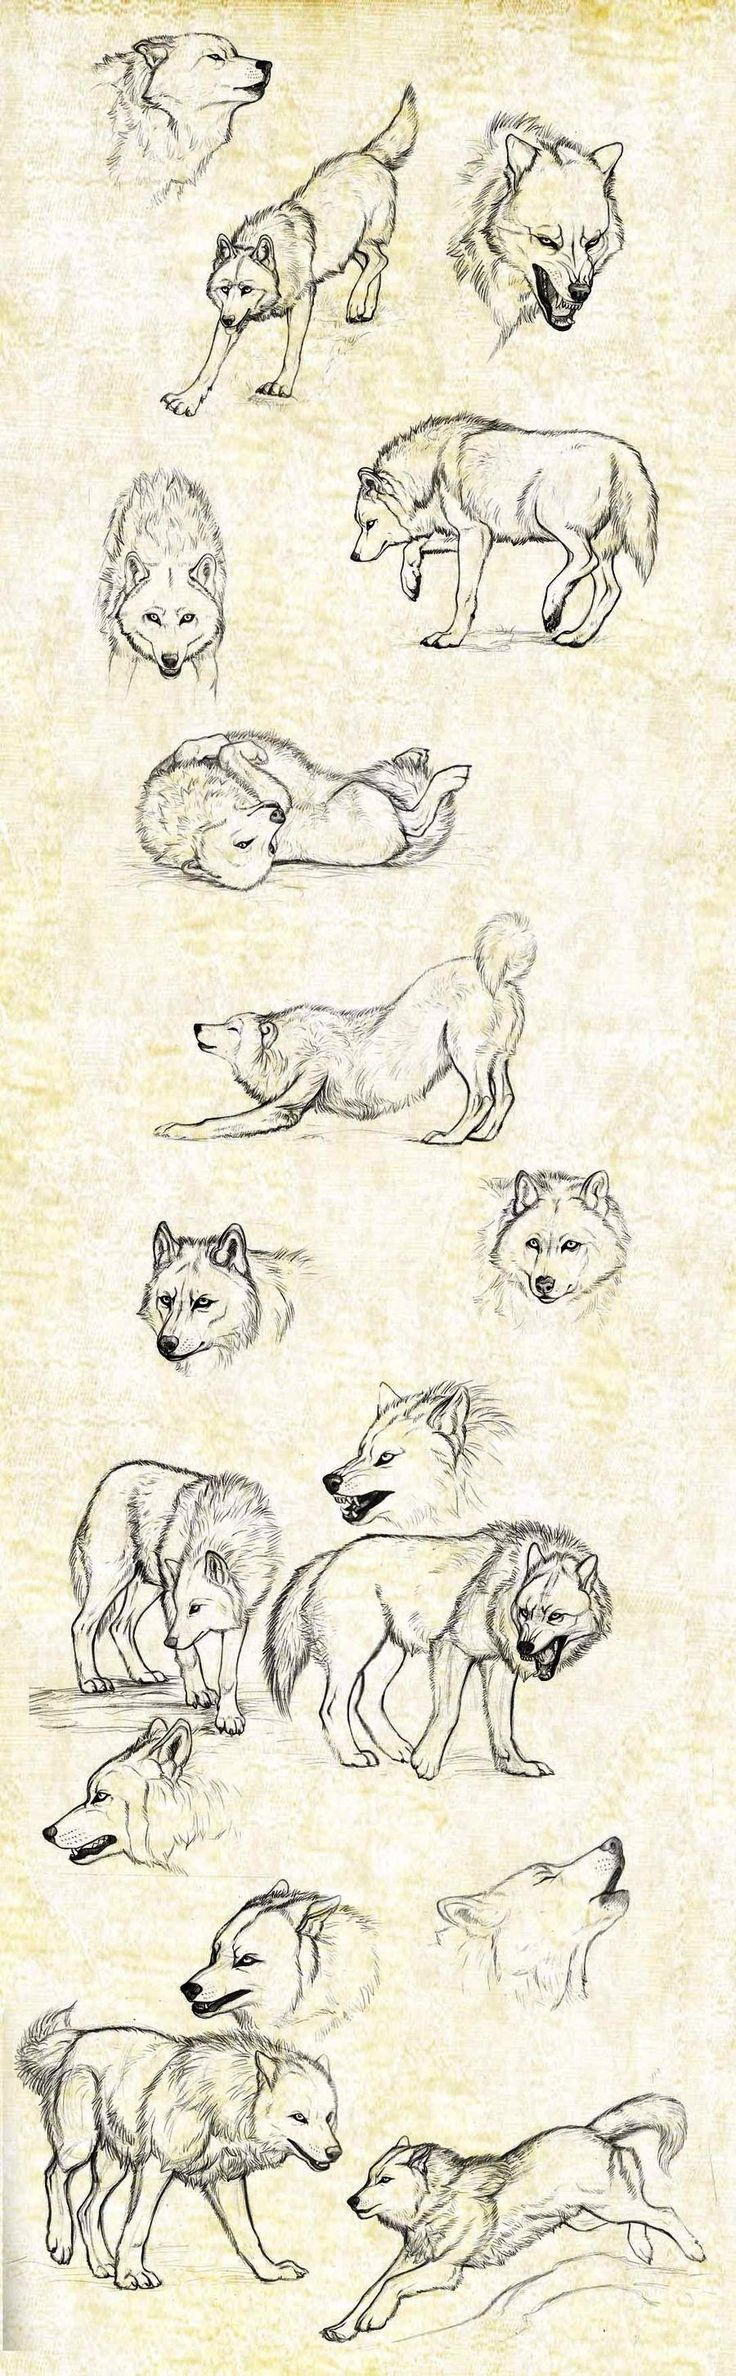 Denver's wolf sketches (one of them has to be a husky, though, because you never see a wolf's tail curl up like that):